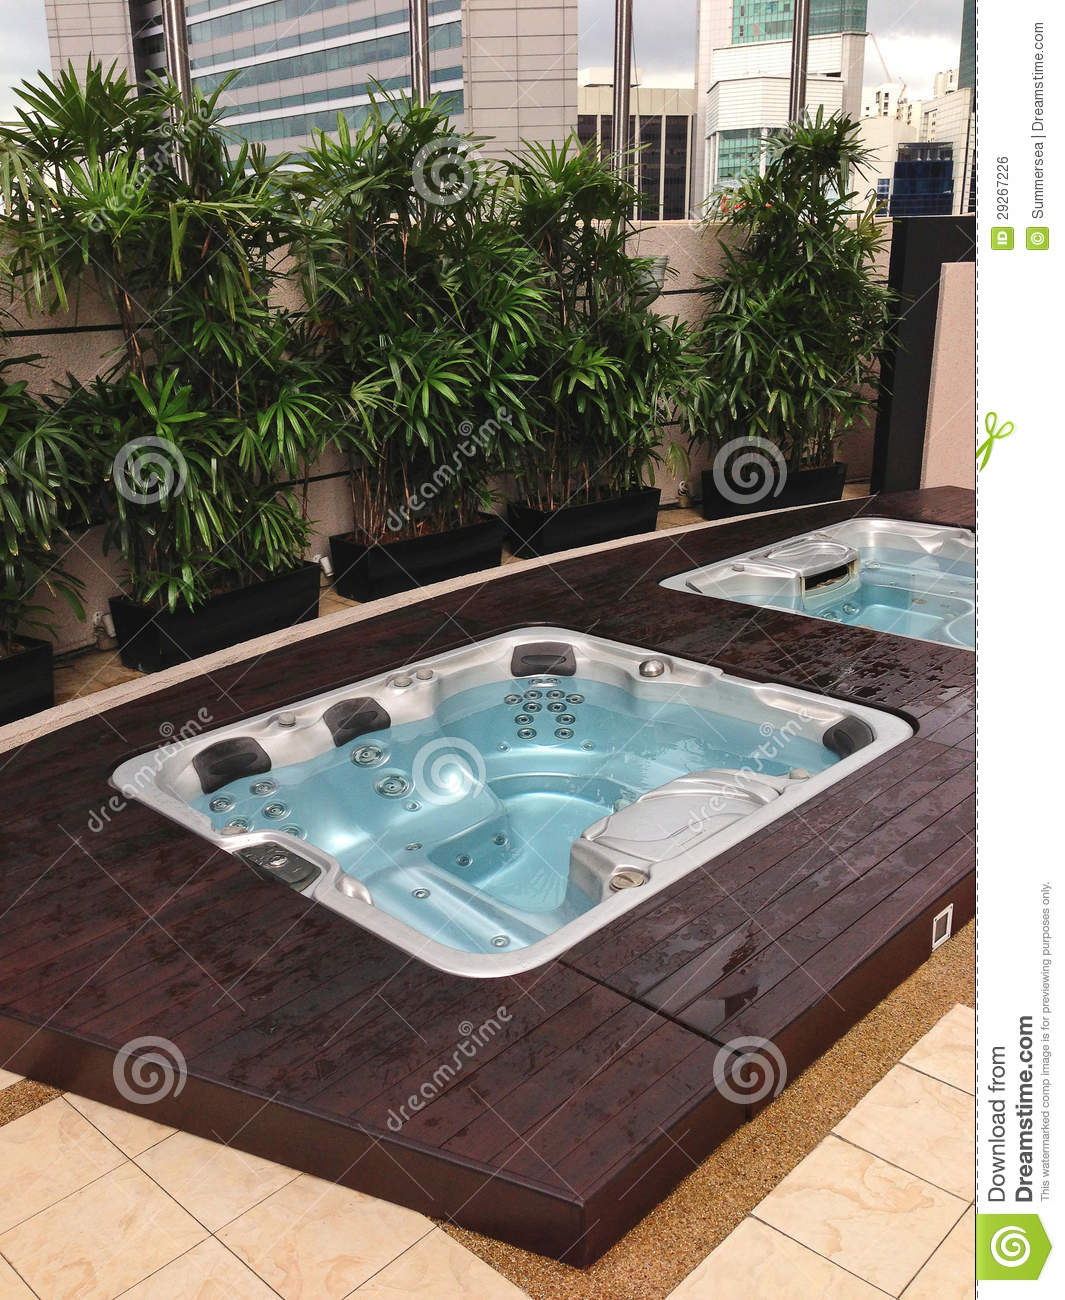 Outdoor Jacuzzi In The City Royalty Free Stock Image - Image: 29267226